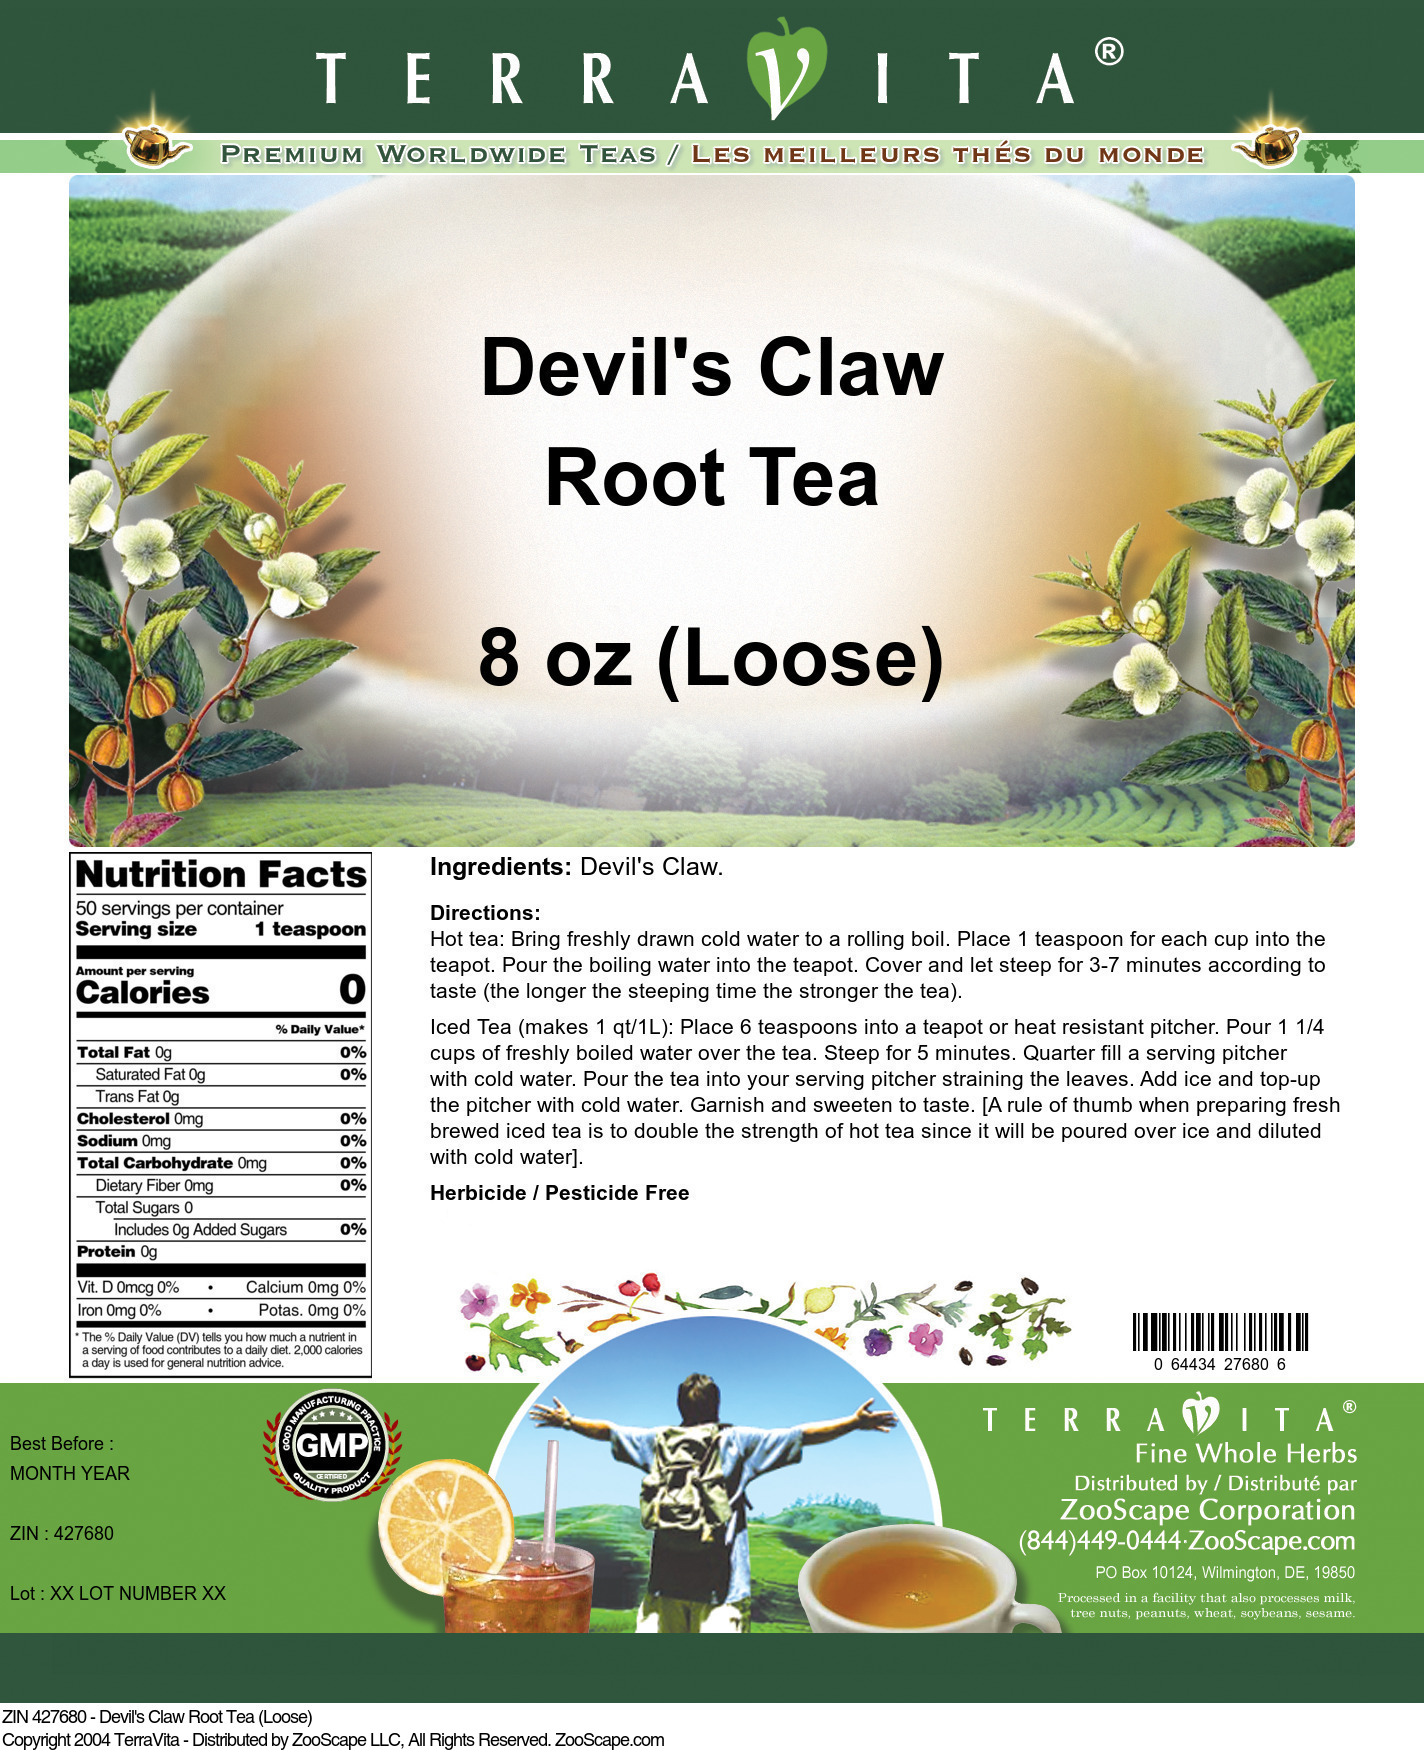 Devil's Claw Root